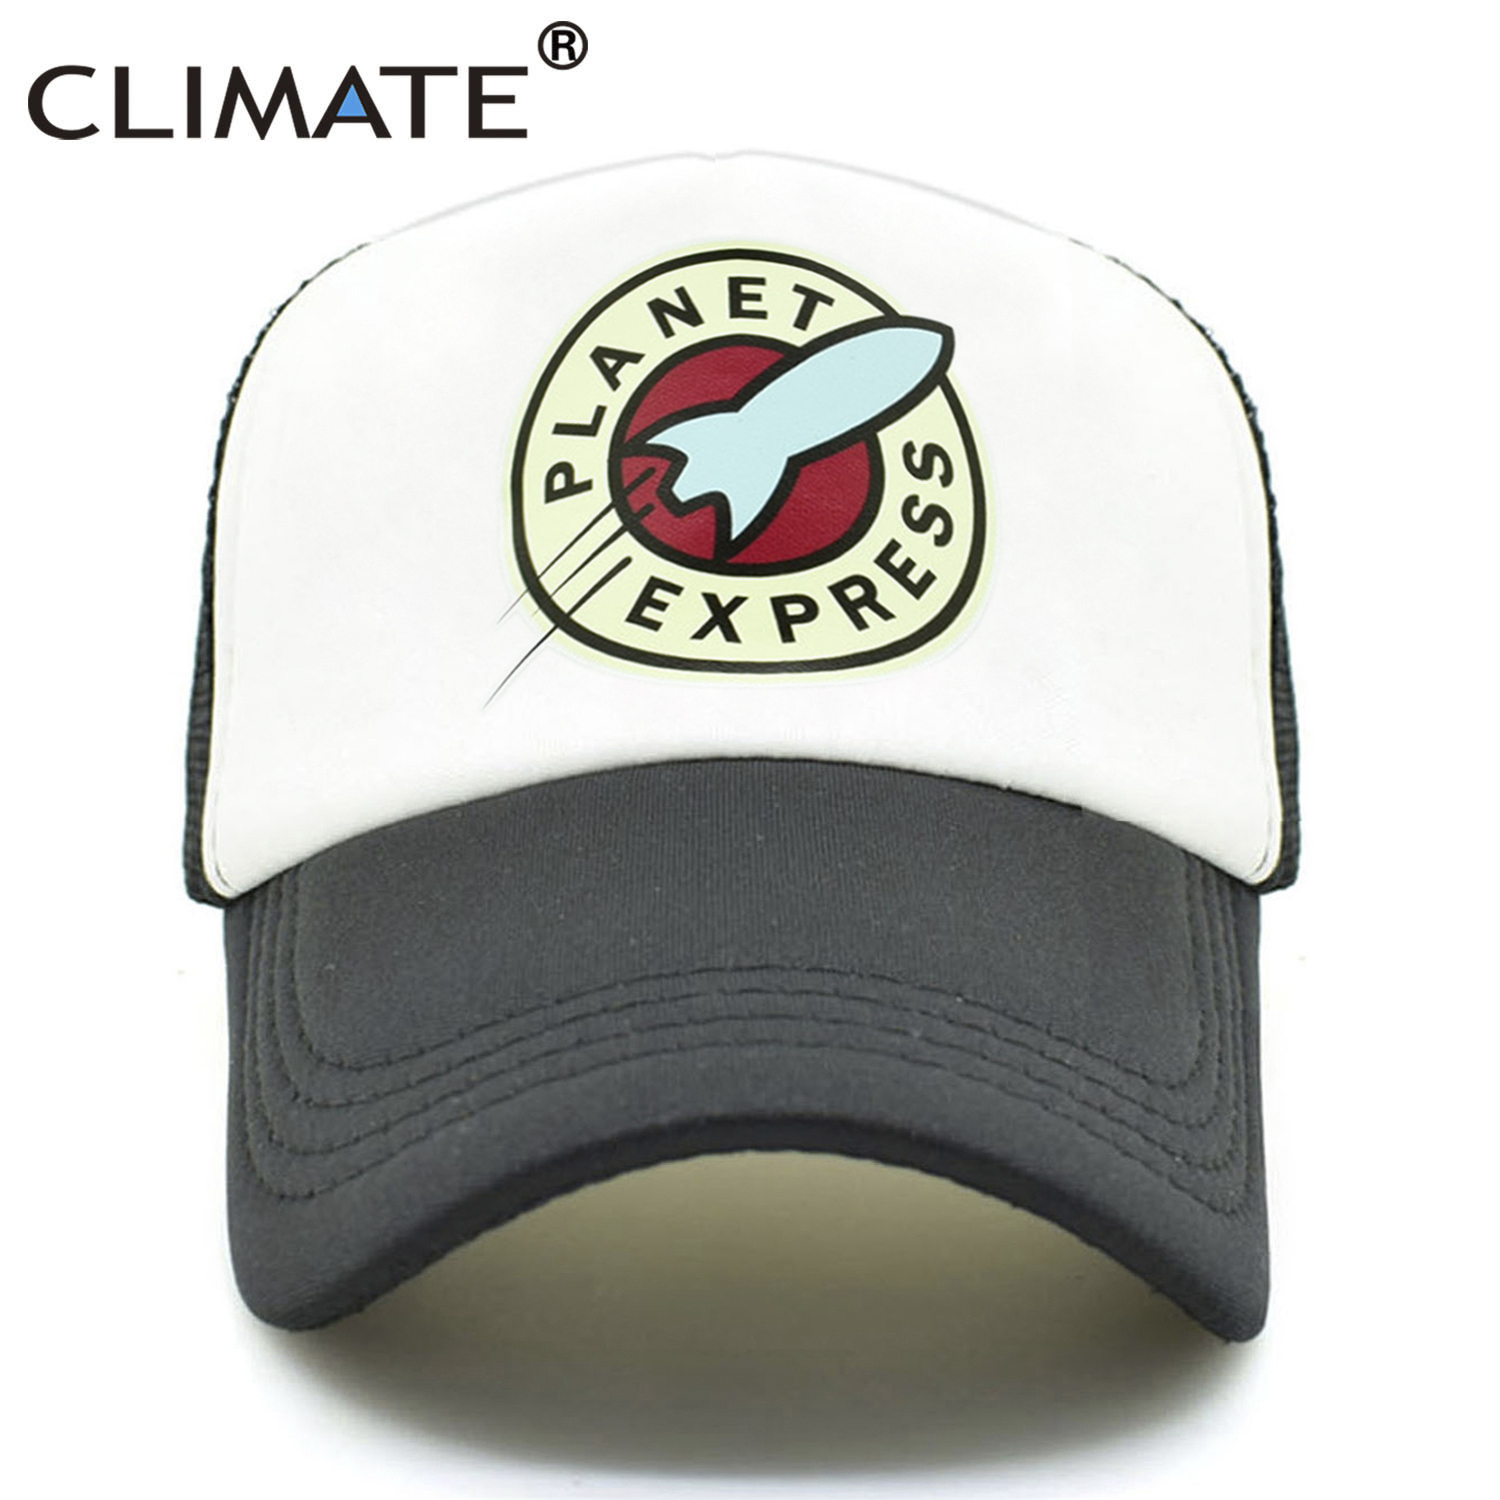 2e692bec764 CLIMATE Planet Express Trucker Caps Hat Funny Mesh Caps Spacex The Expanse  Rocket Spaceship Cool Summer